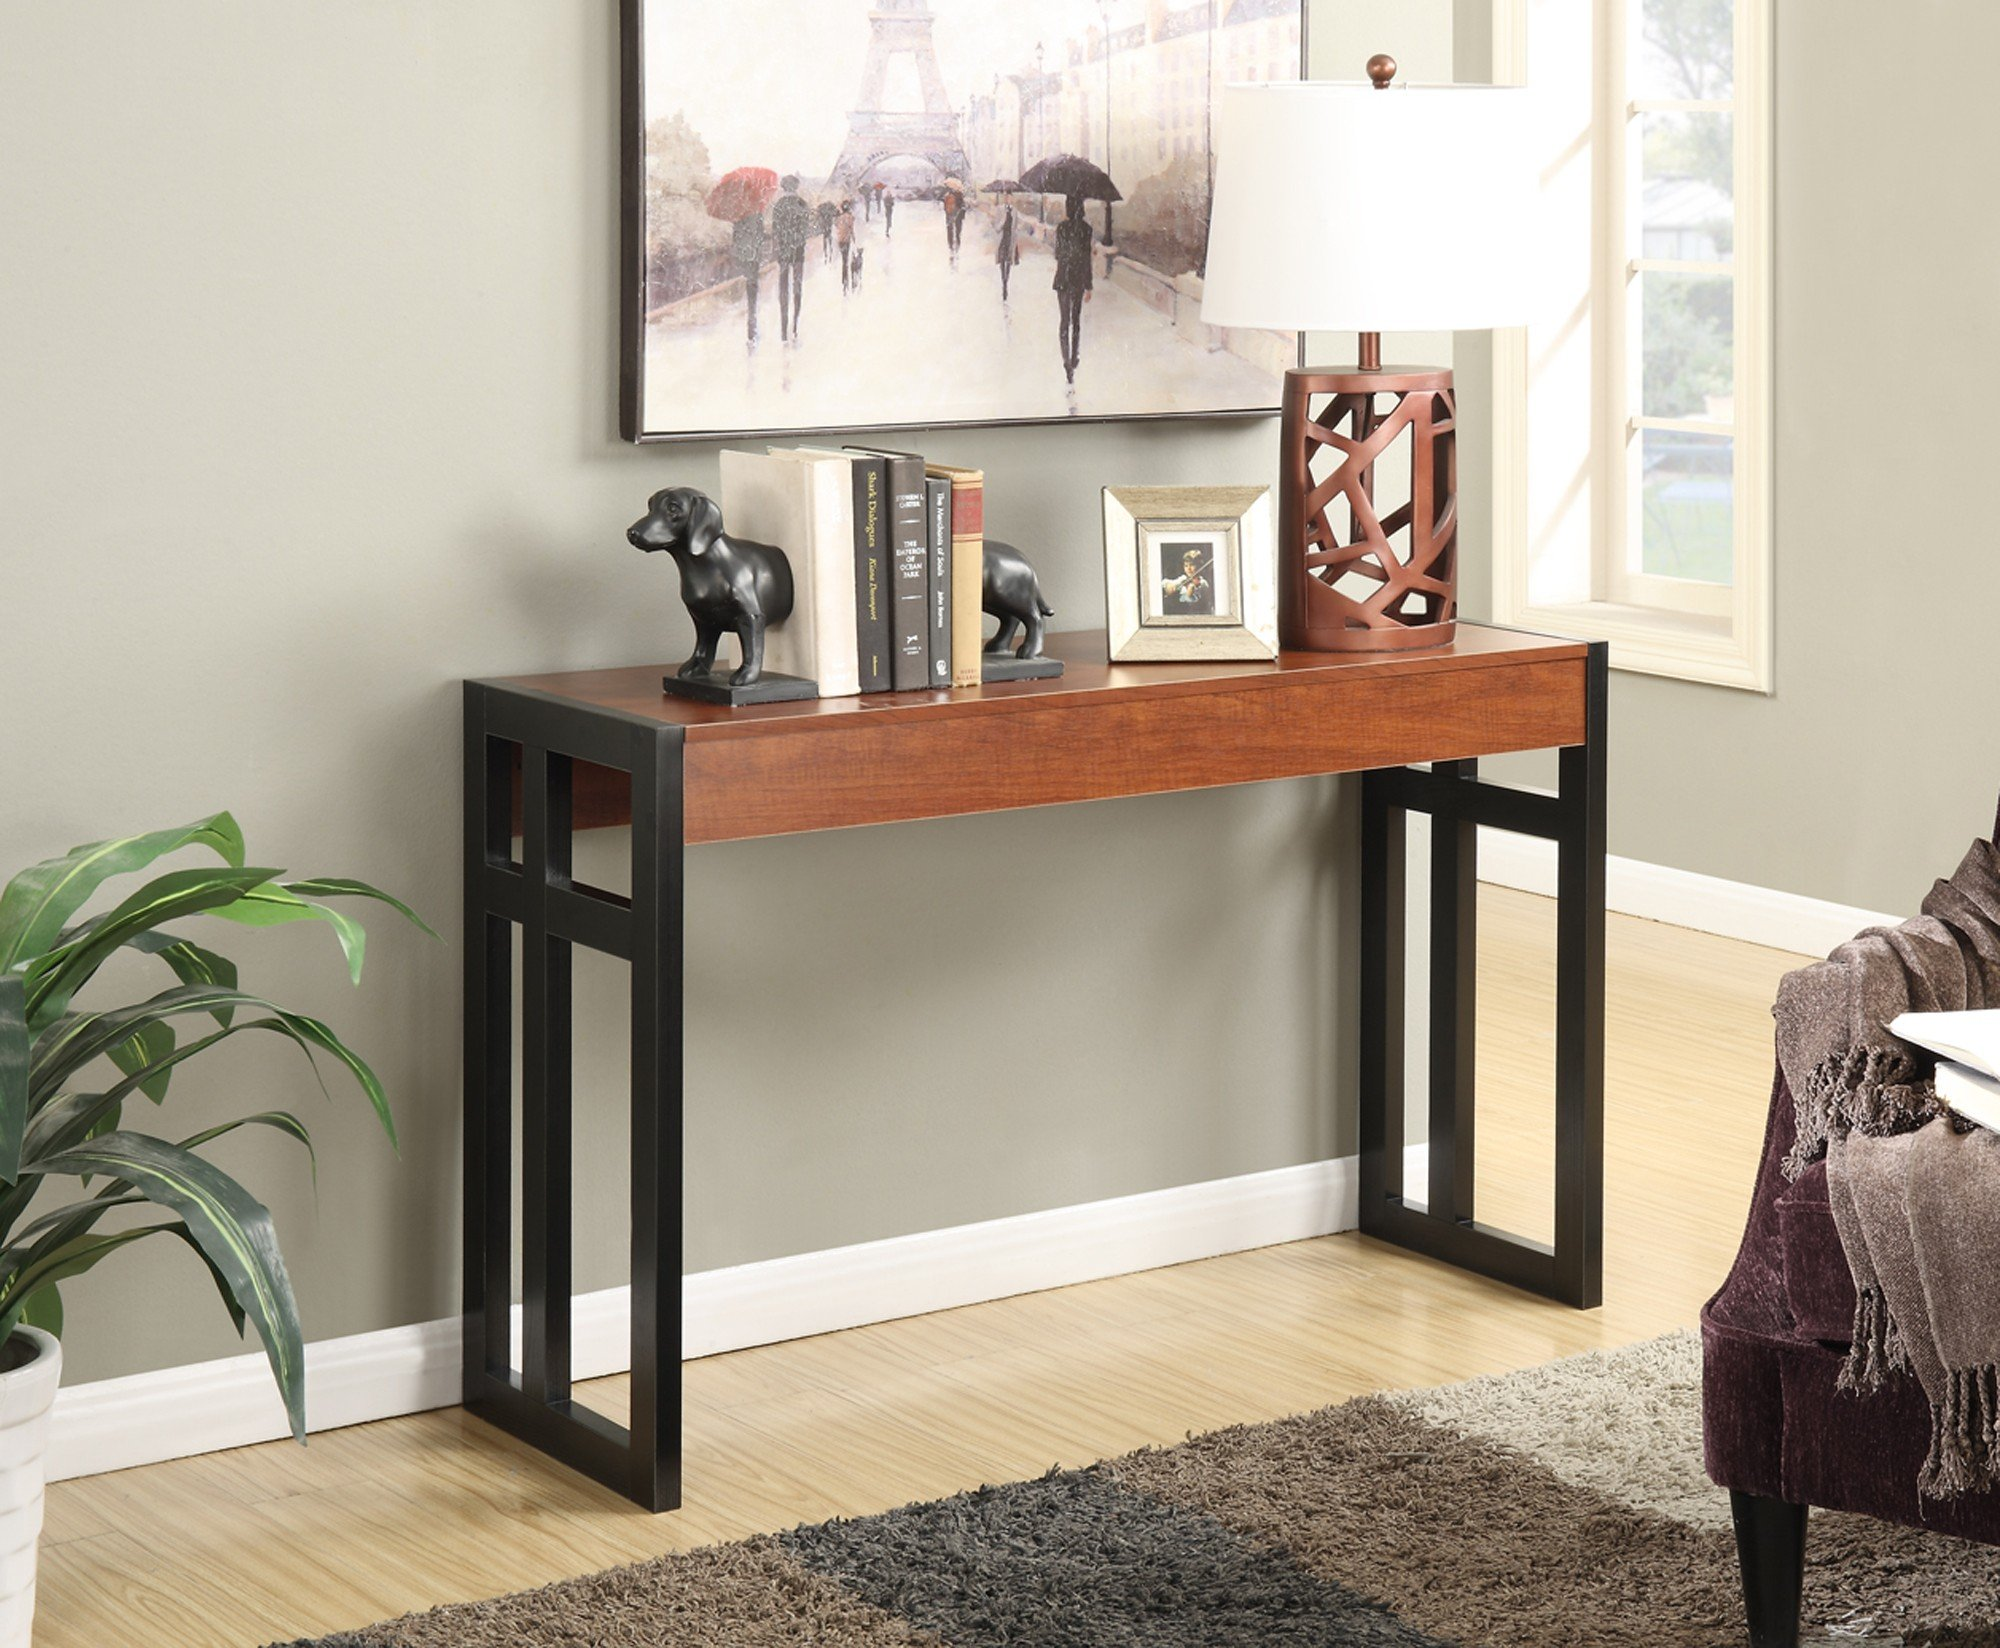 Modern console table decor wood accent entryway sofa side stand modern console table decor wood accent entryway sofa side stand bookcase display geotapseo Gallery